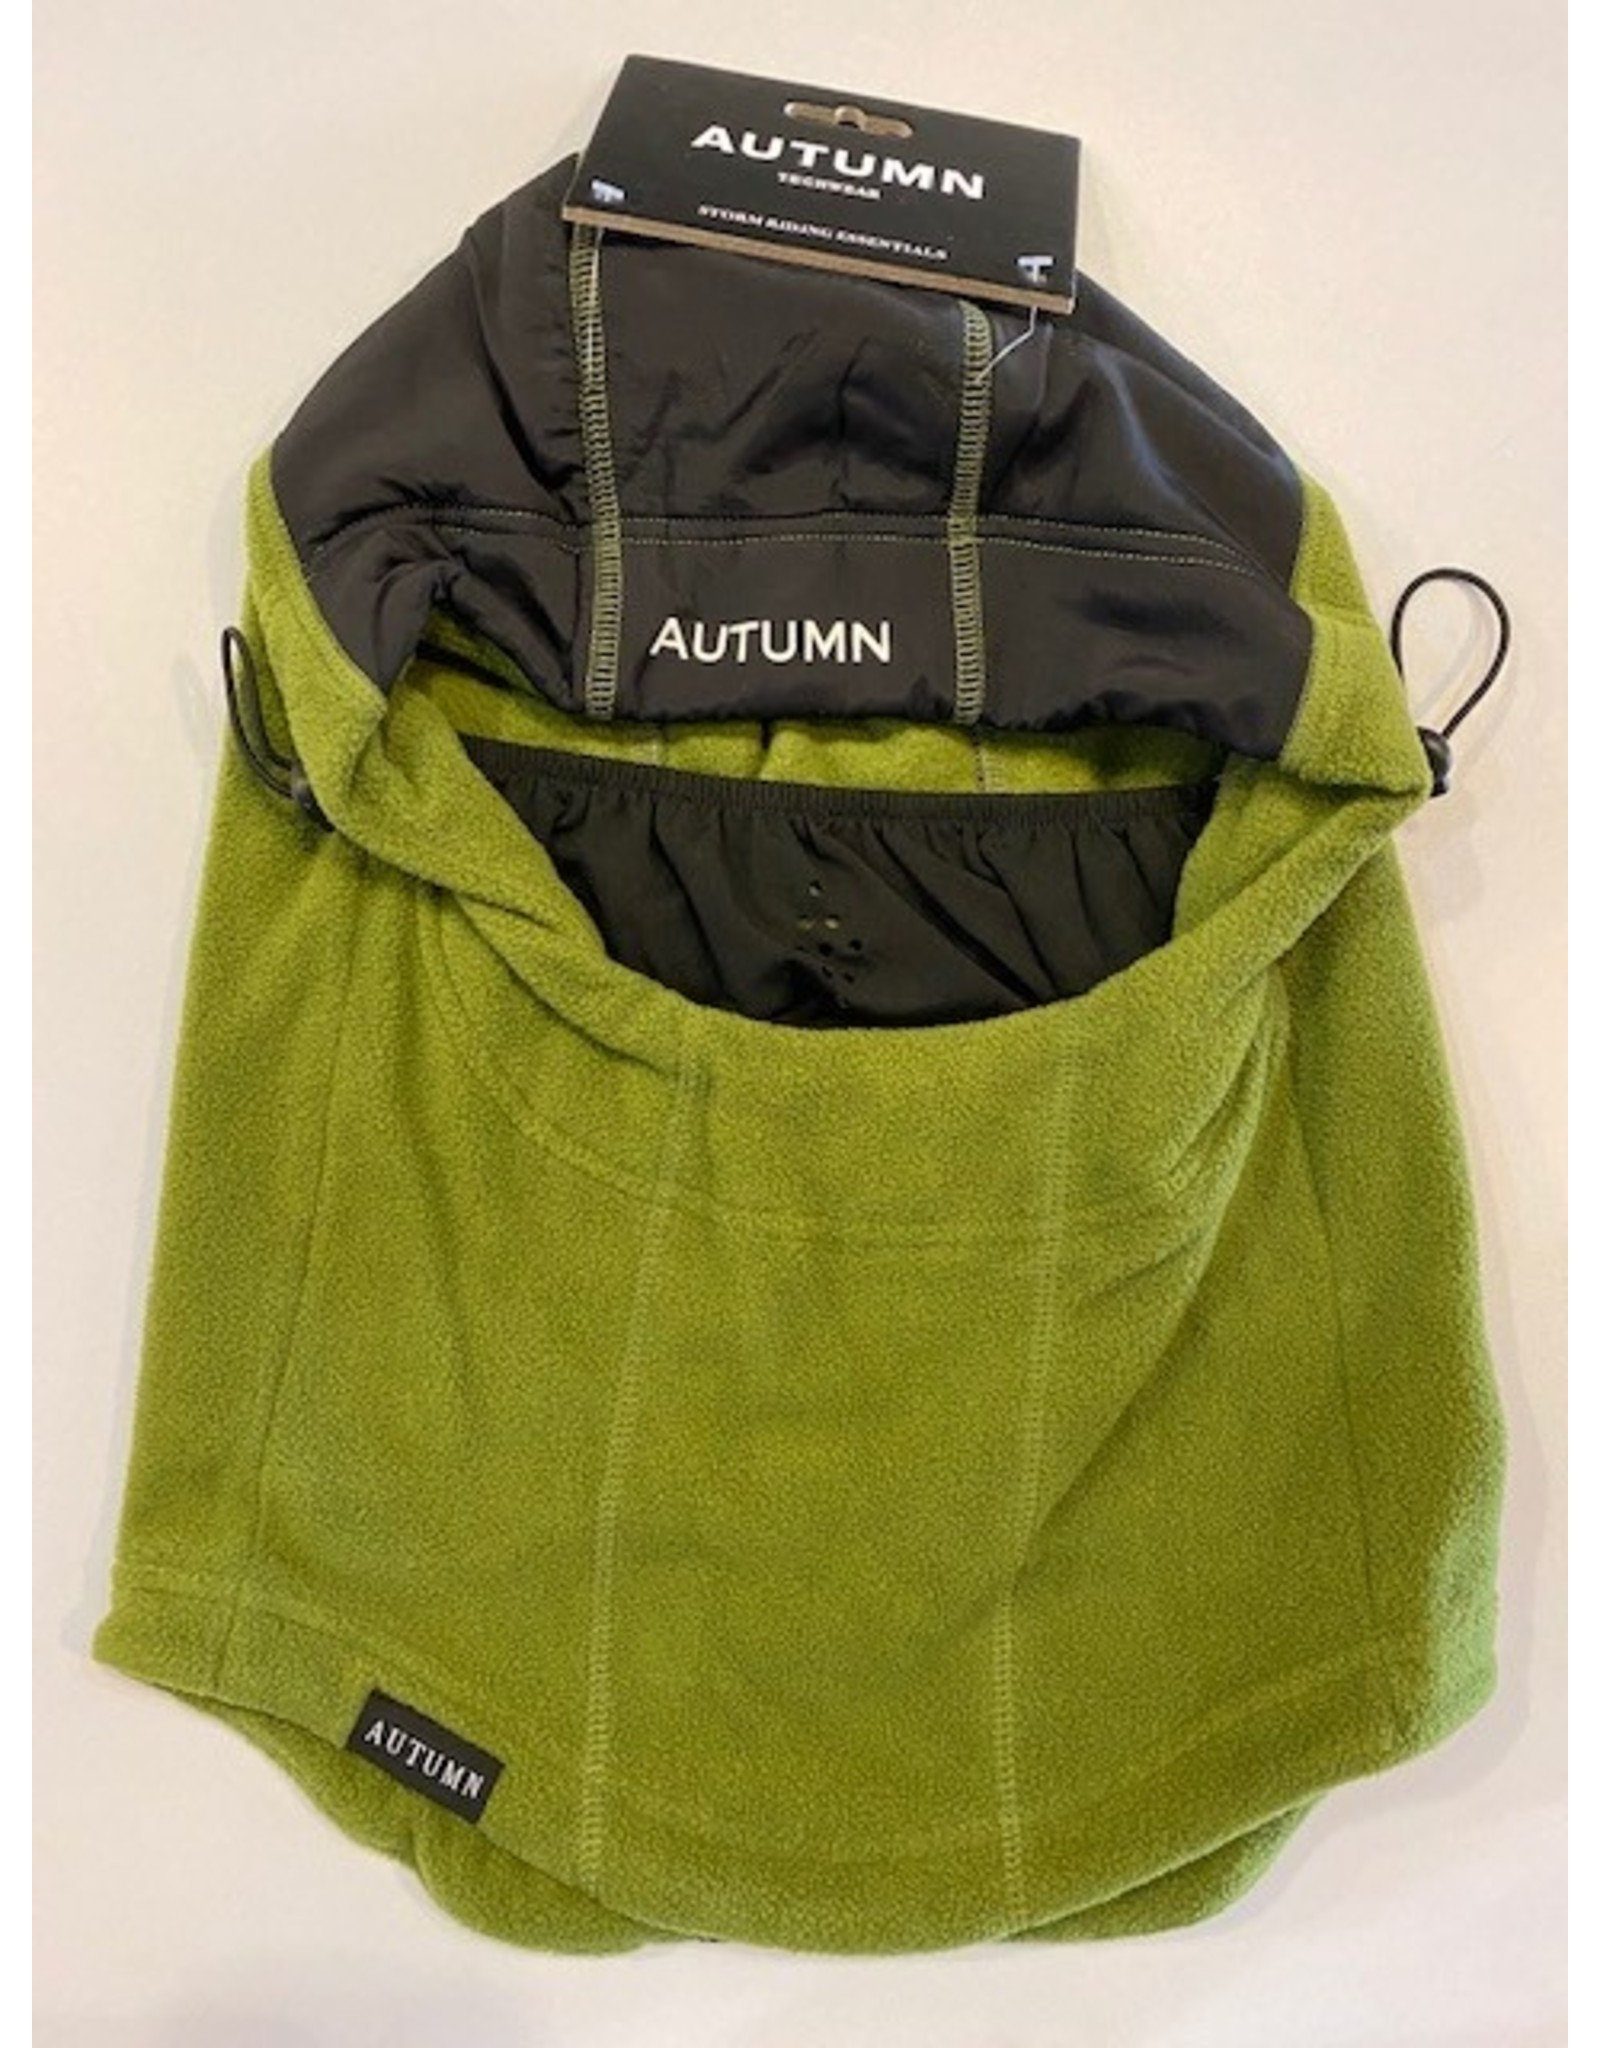 AUTUMN AUTUMN HI TEK HOOD MASK ARMY